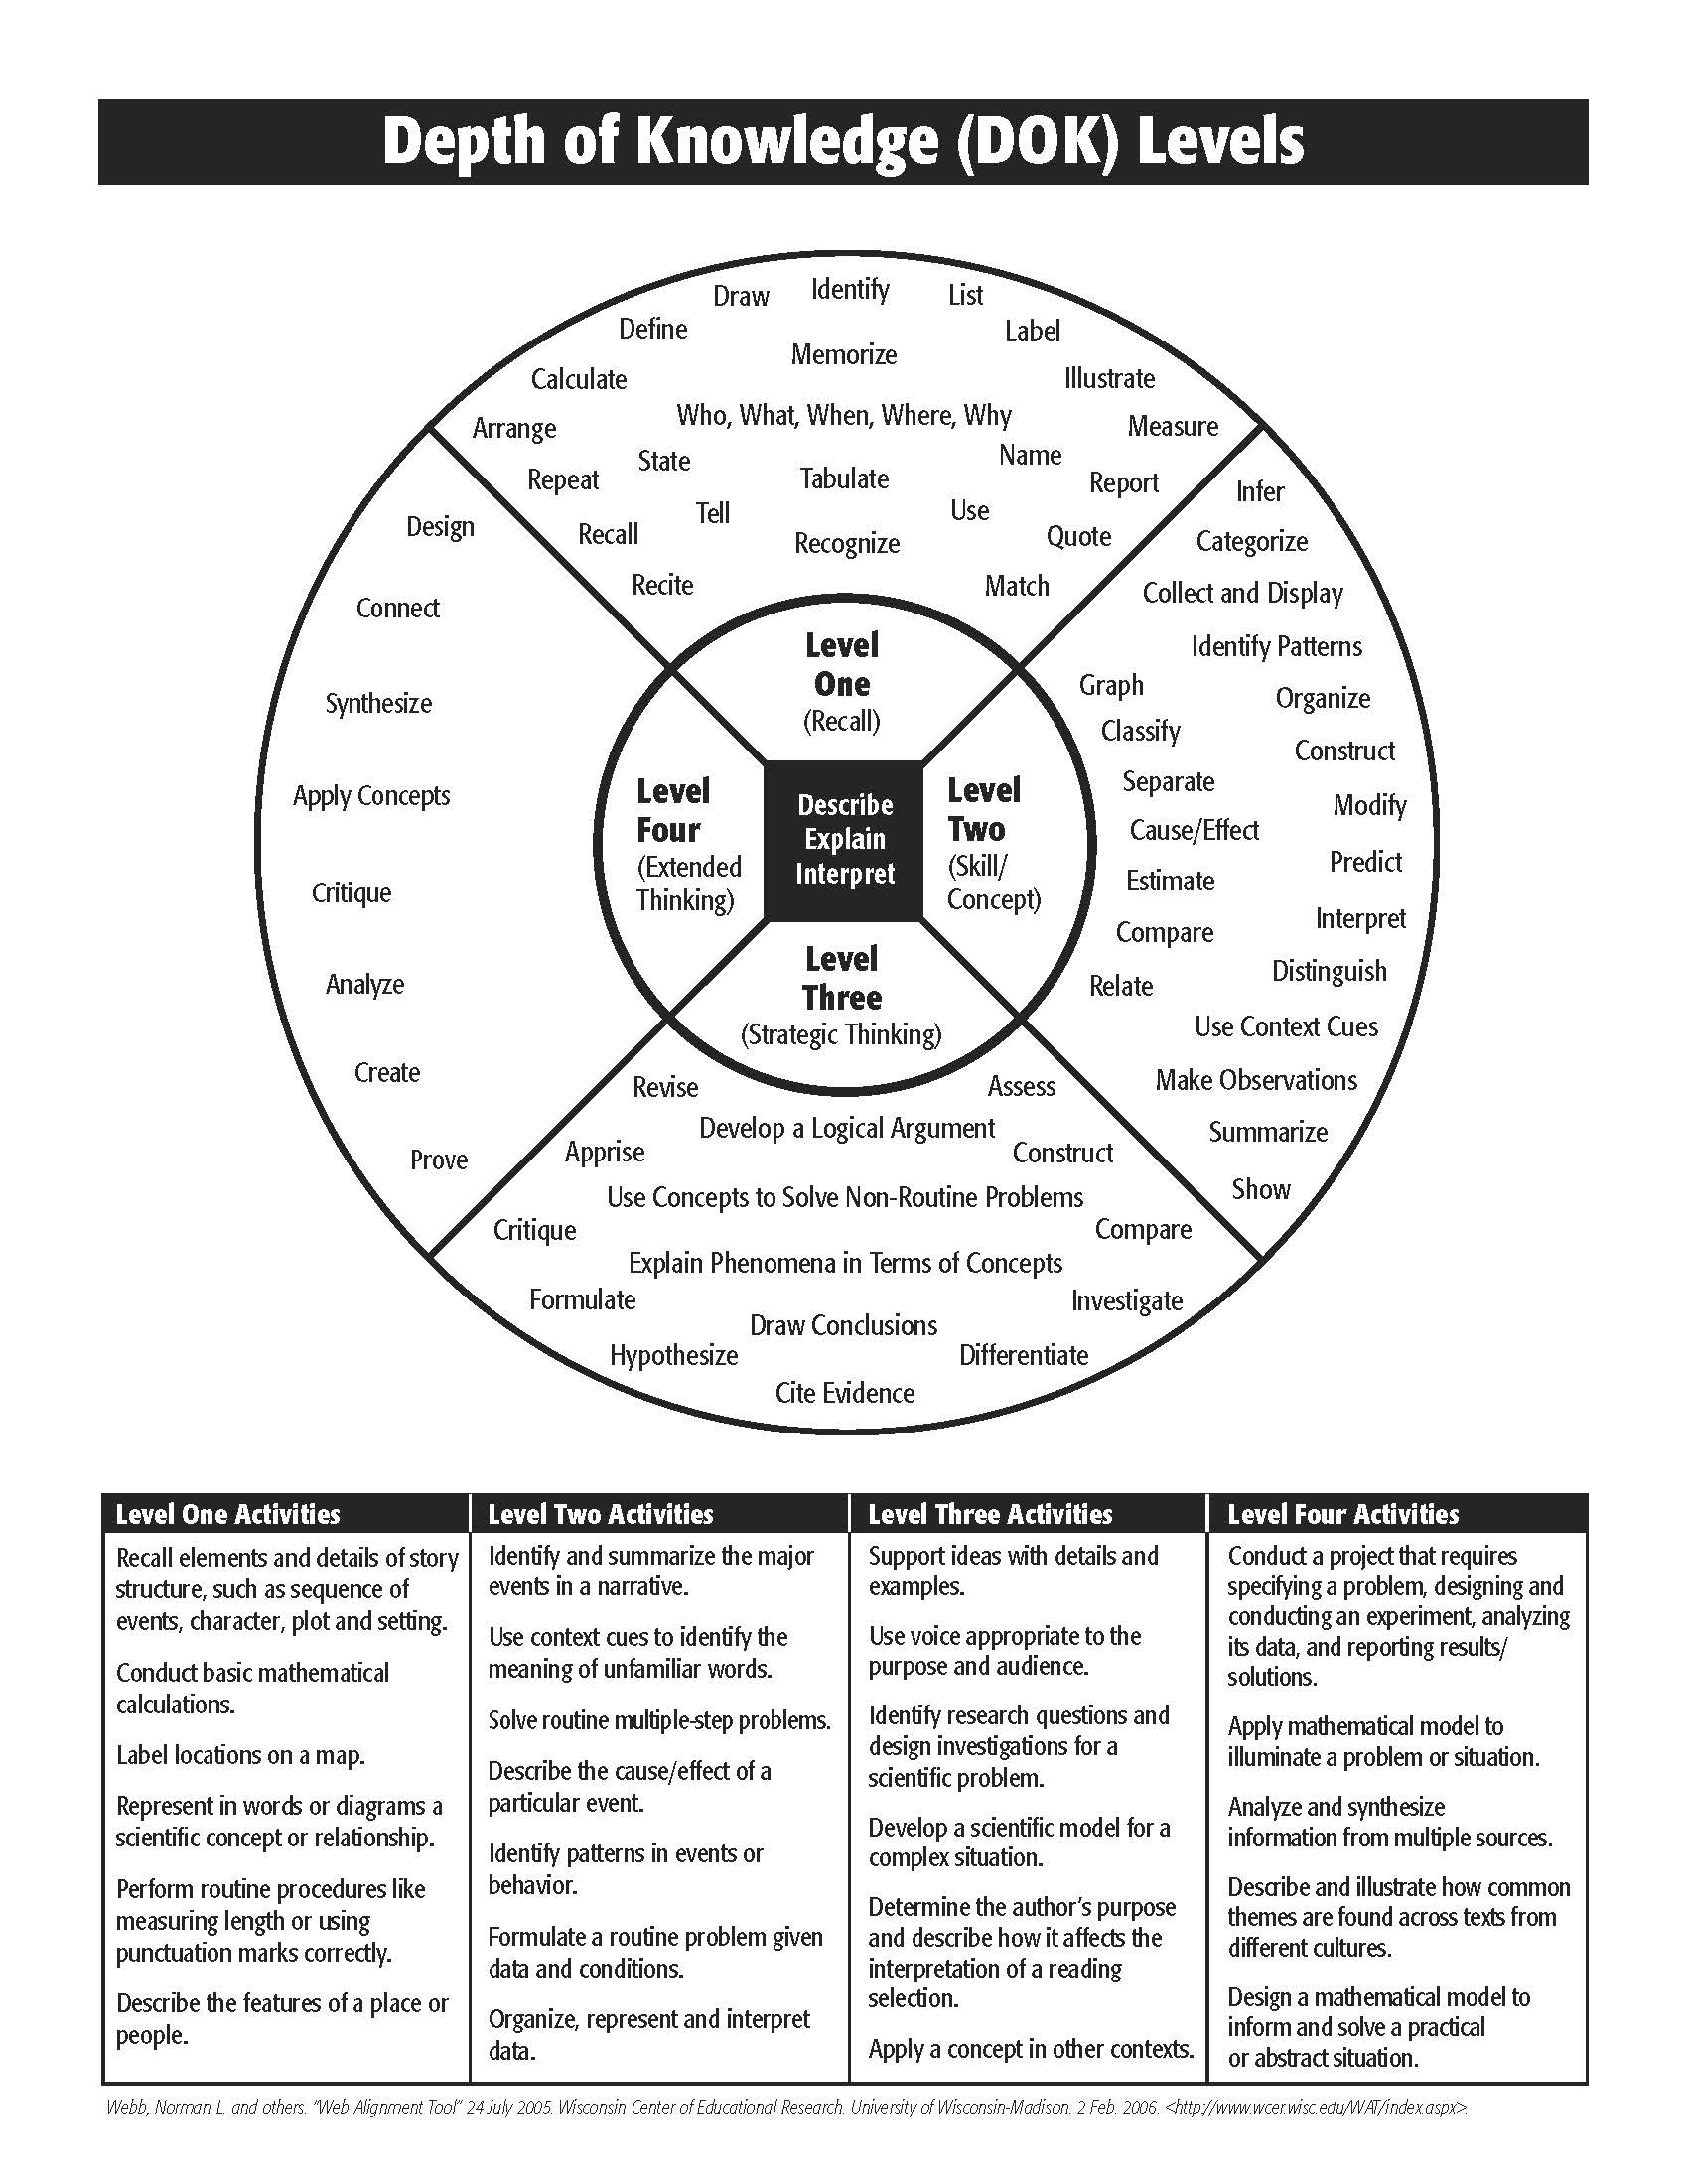 worksheet Ibn Battuta Worksheet lesson the travels of ibn battuta mrcaseyhistory worksheet with a title cool fonts encouraged clear directions and set 6 8 questions must be mixed in terms of